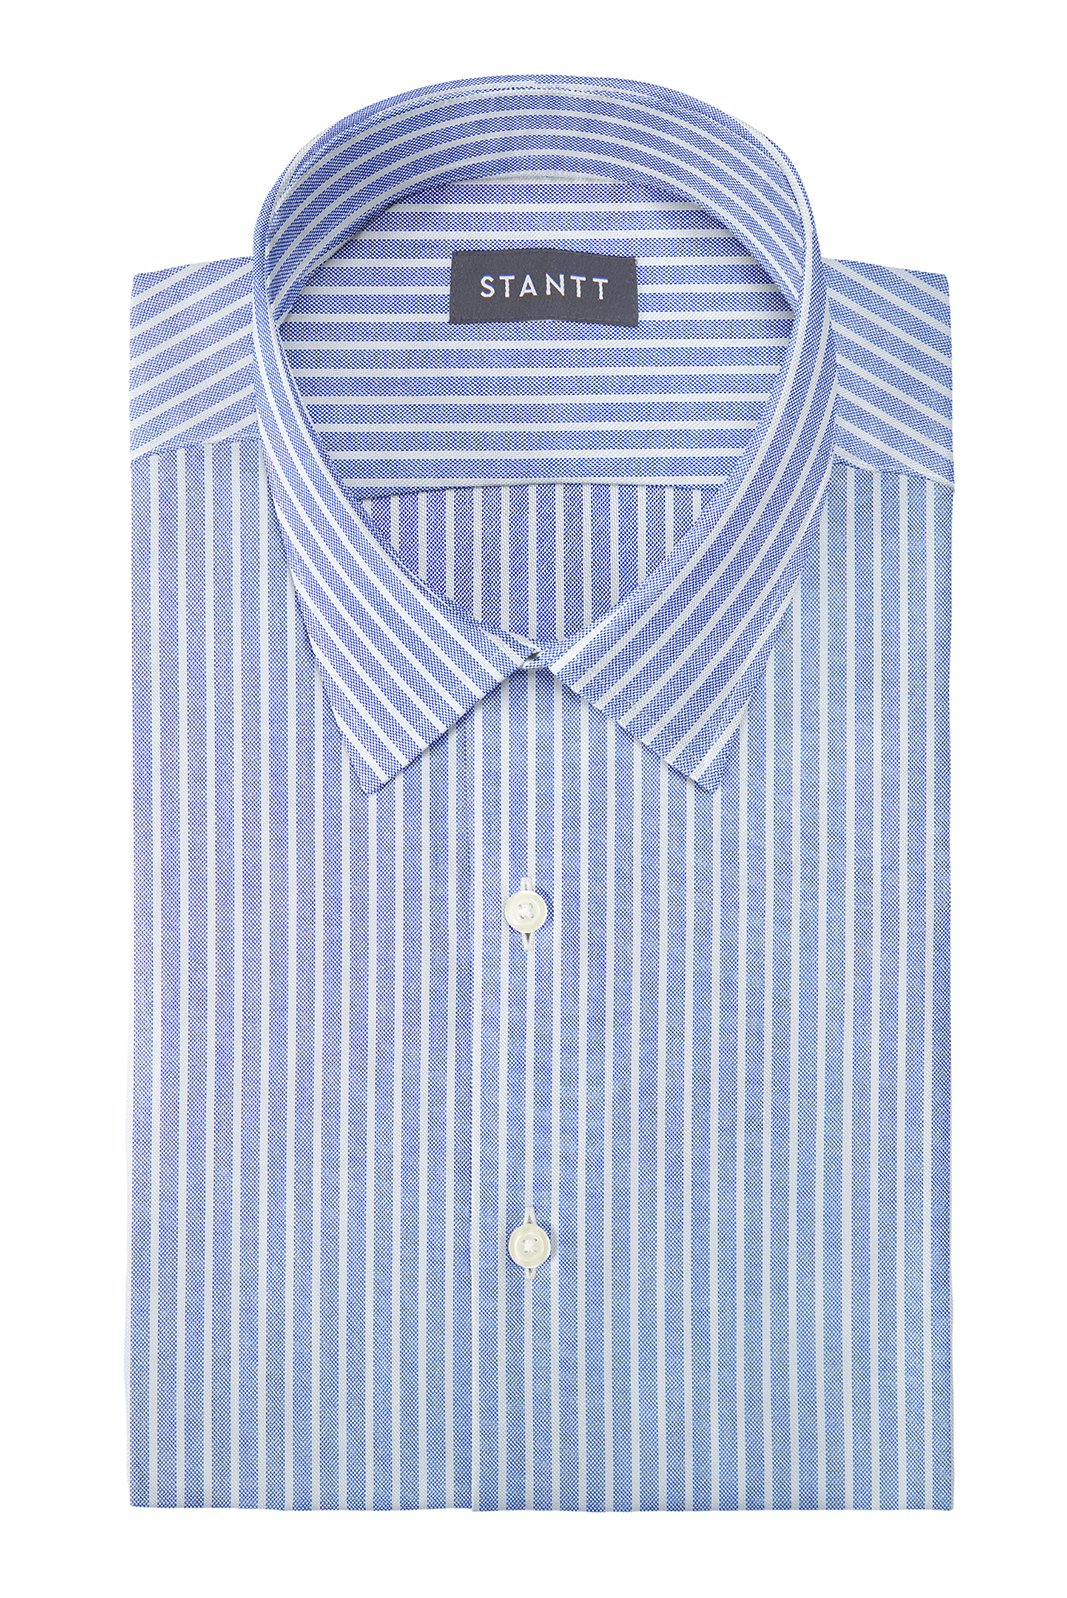 Reverse Blue Oxford Stripe: Semi-Spread Collar, French Cuff